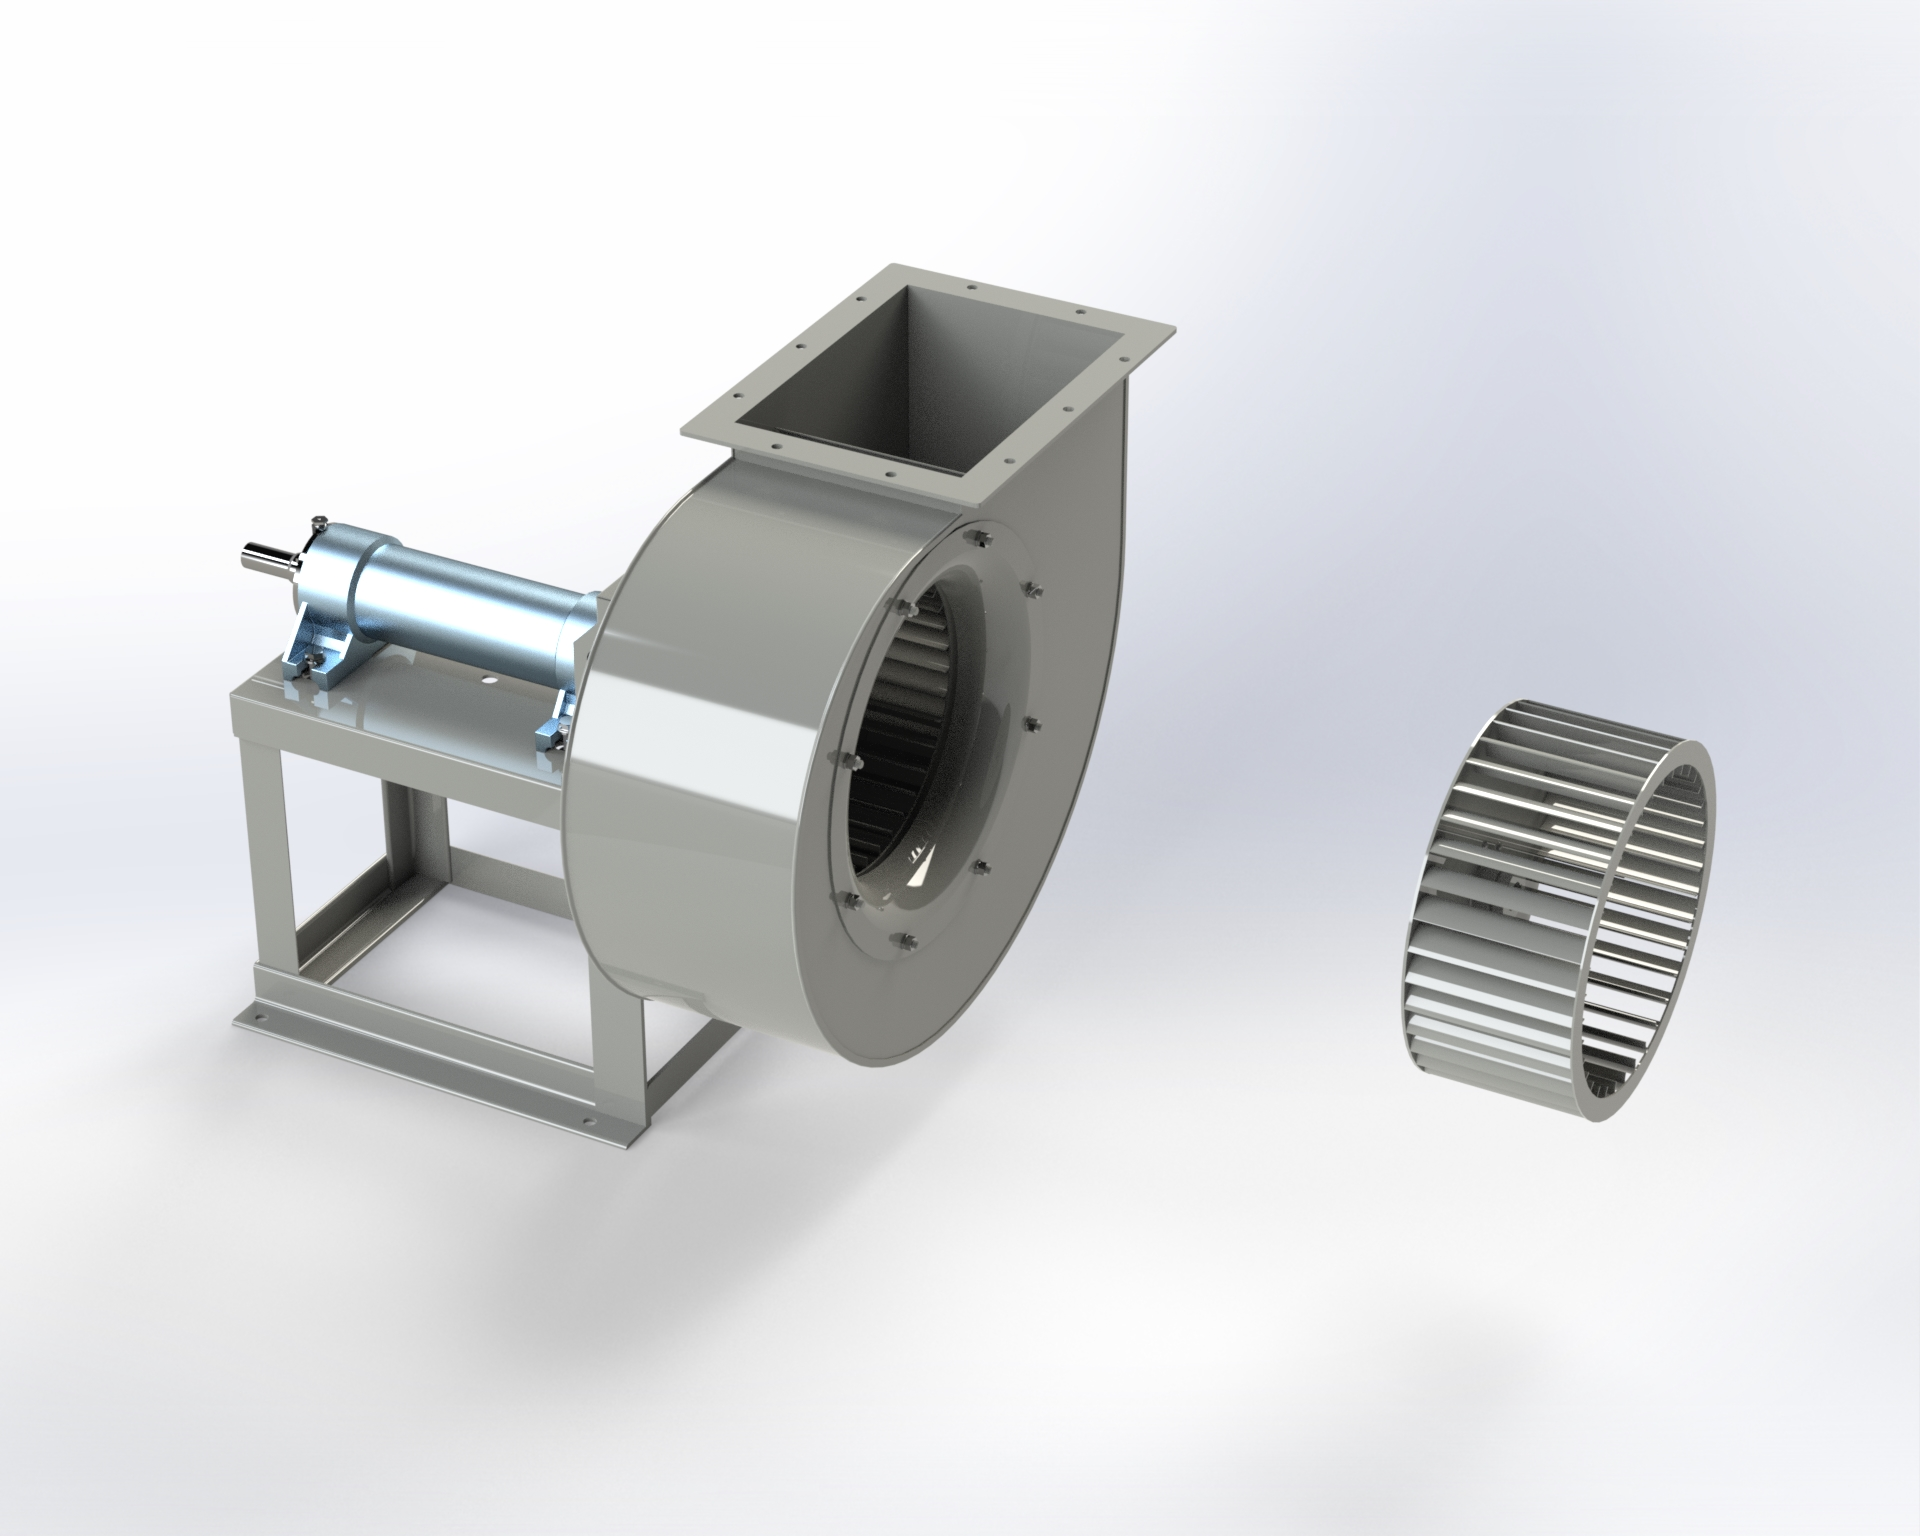 Low-pressure centrifugal fan. Impeller with blades curved forward. Belt drive.